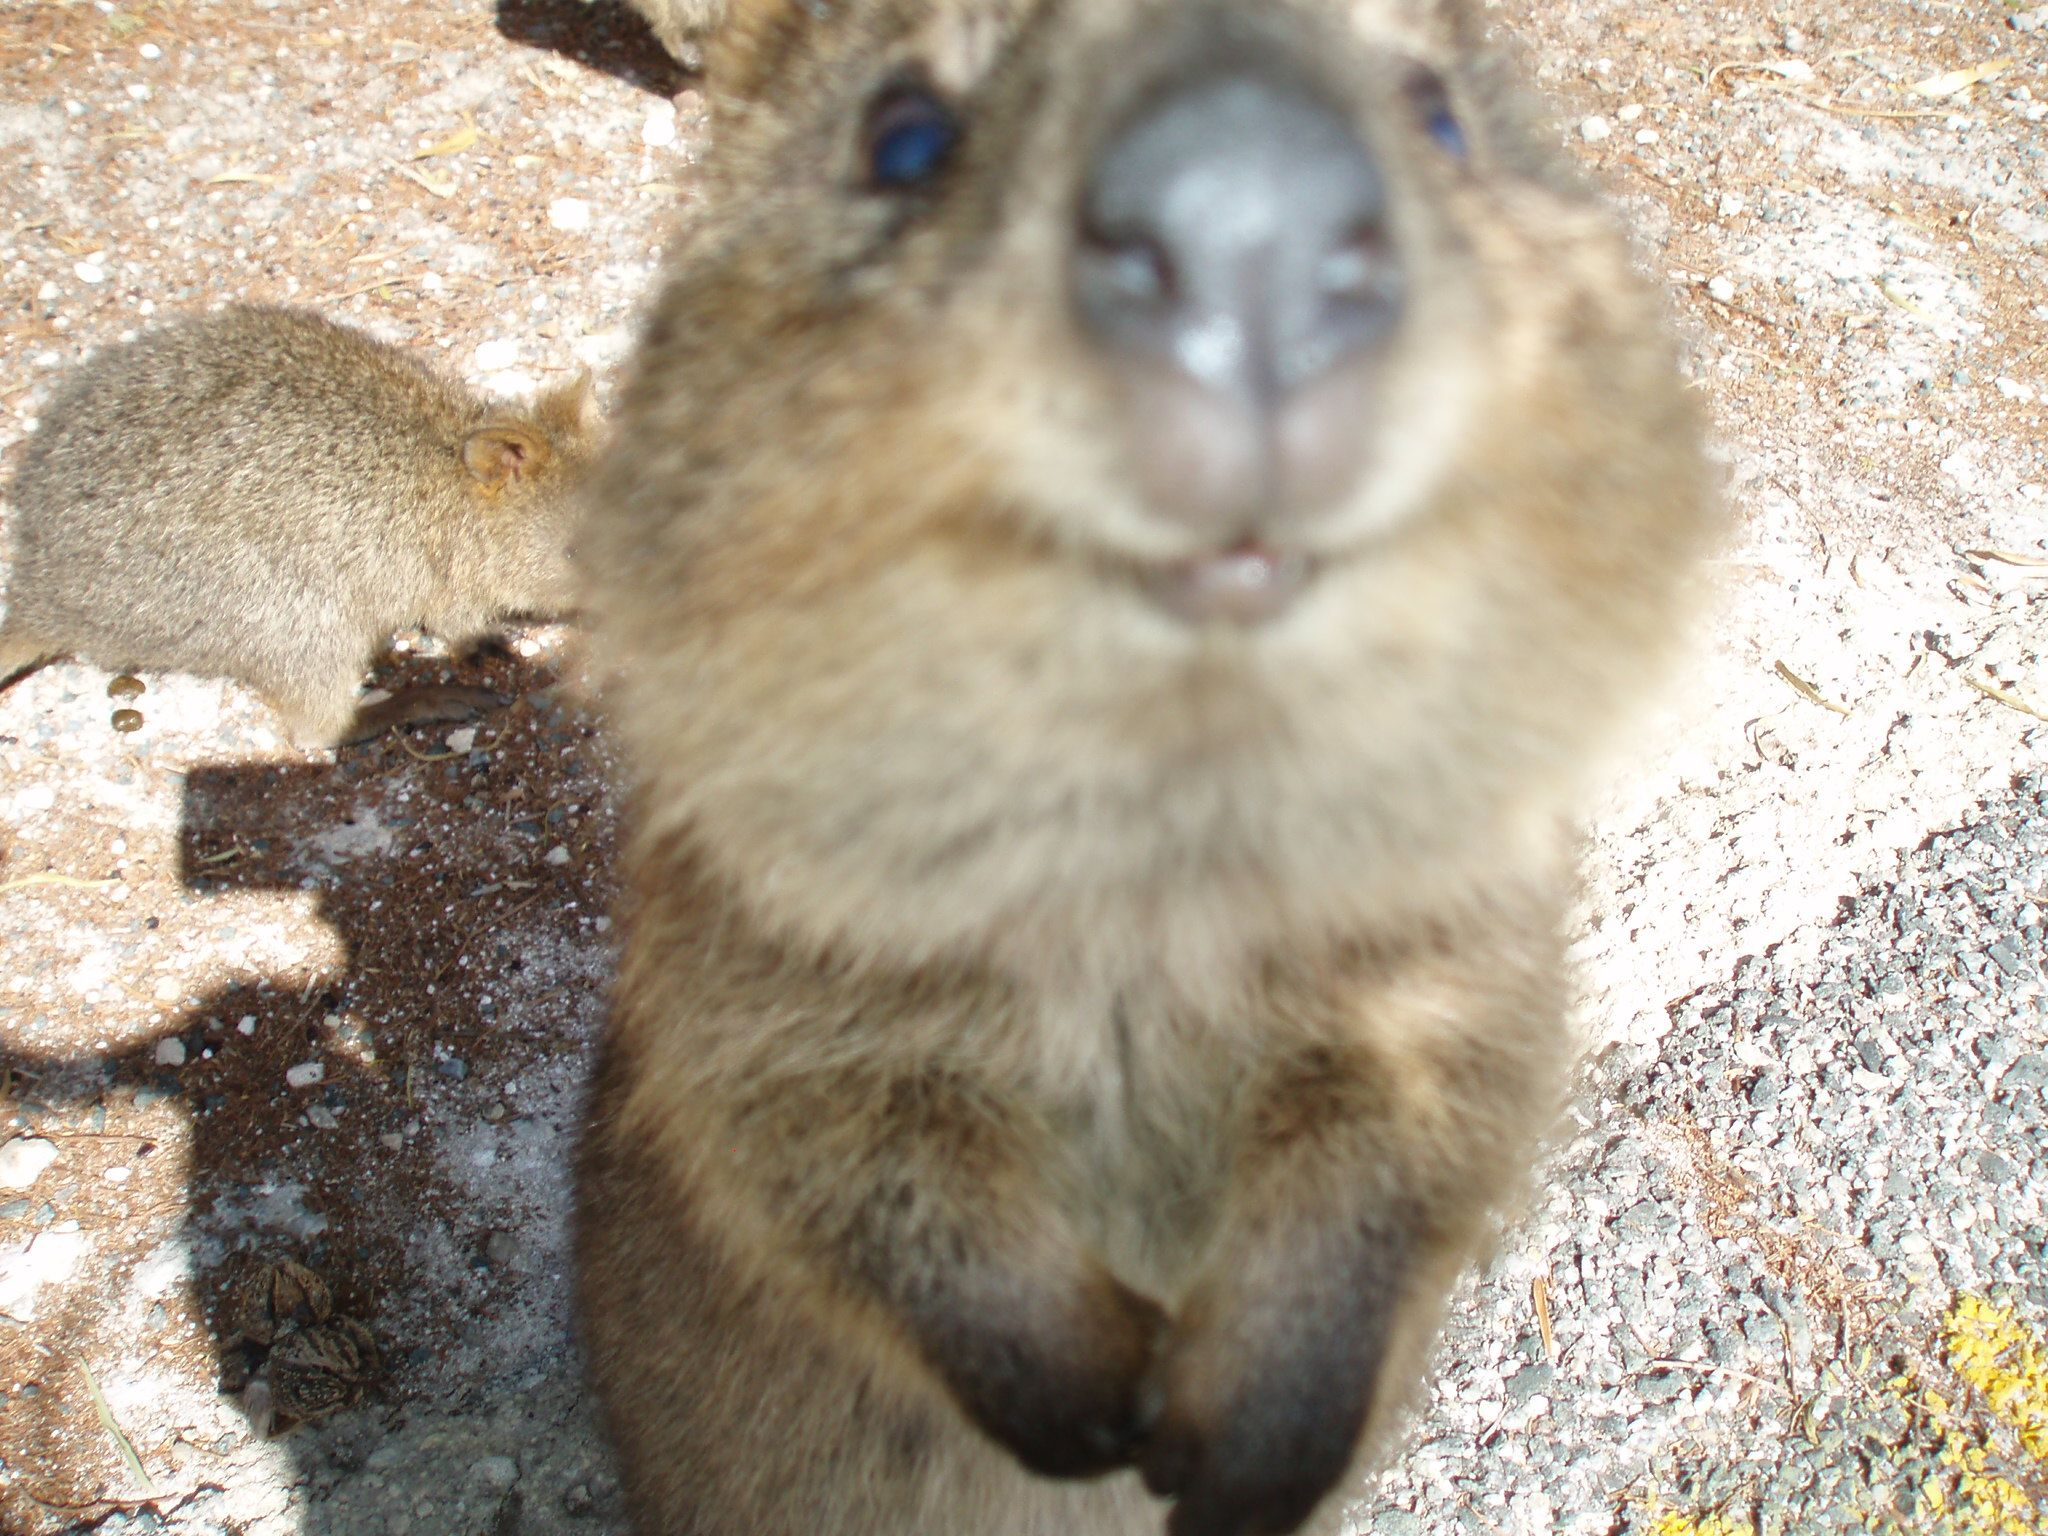 Quokka The Cutest Animal Ever Rottnest Island Australia - 15 photos that prove quokkas are the happiest animals in the world